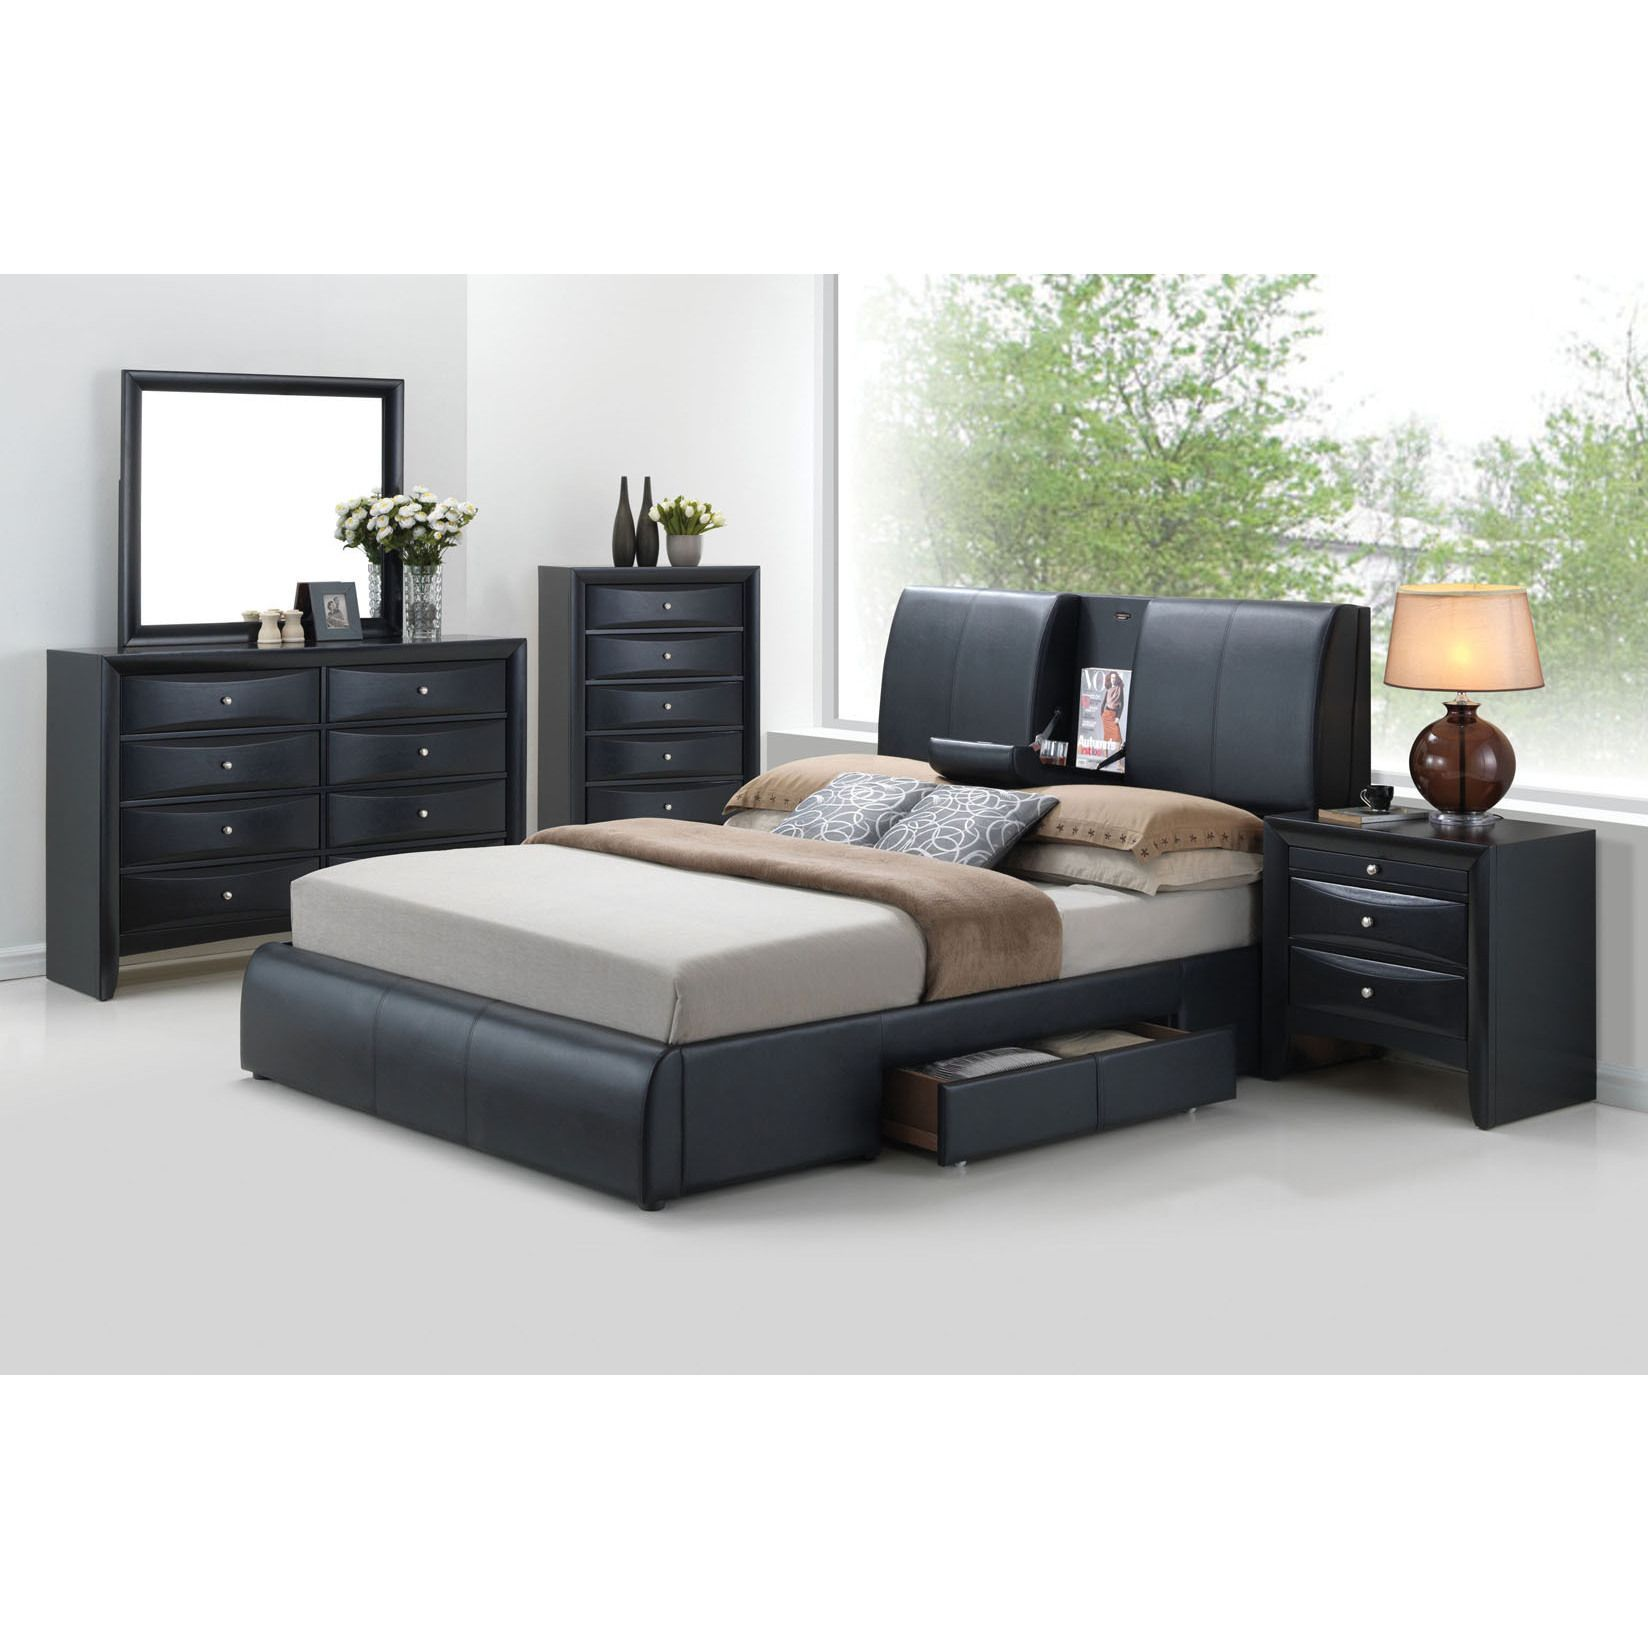 Acme Kofi Black PU Bed with Storage (Queen)